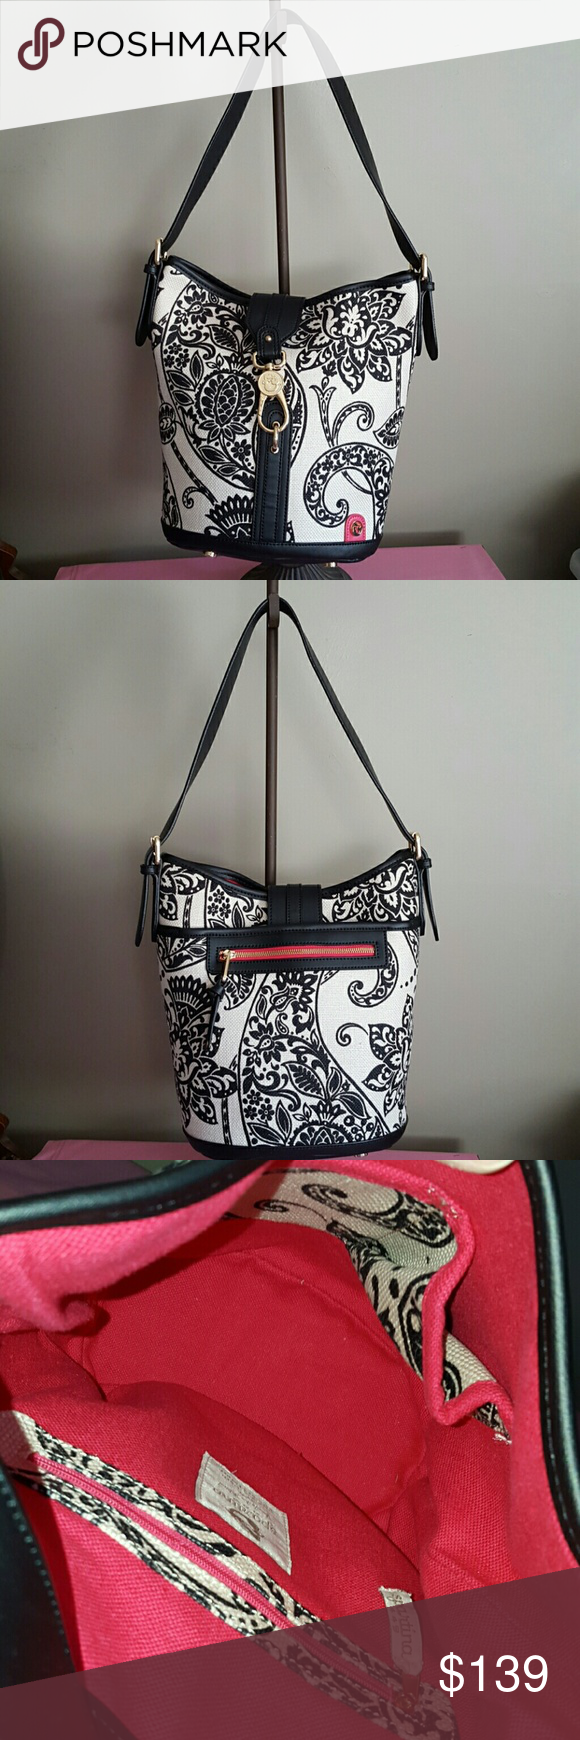 SPARTINA NATURAL LINEN BUCKET TOTE Trimmed in leather with gold hardware this is a beautiful black and cream color tote.  The interior color is actually hot pink,  not orange.  Adjustable strap.  Minimal wear.  Flawless condition.   No stains, tears or odors. Bags Shoulder Bags